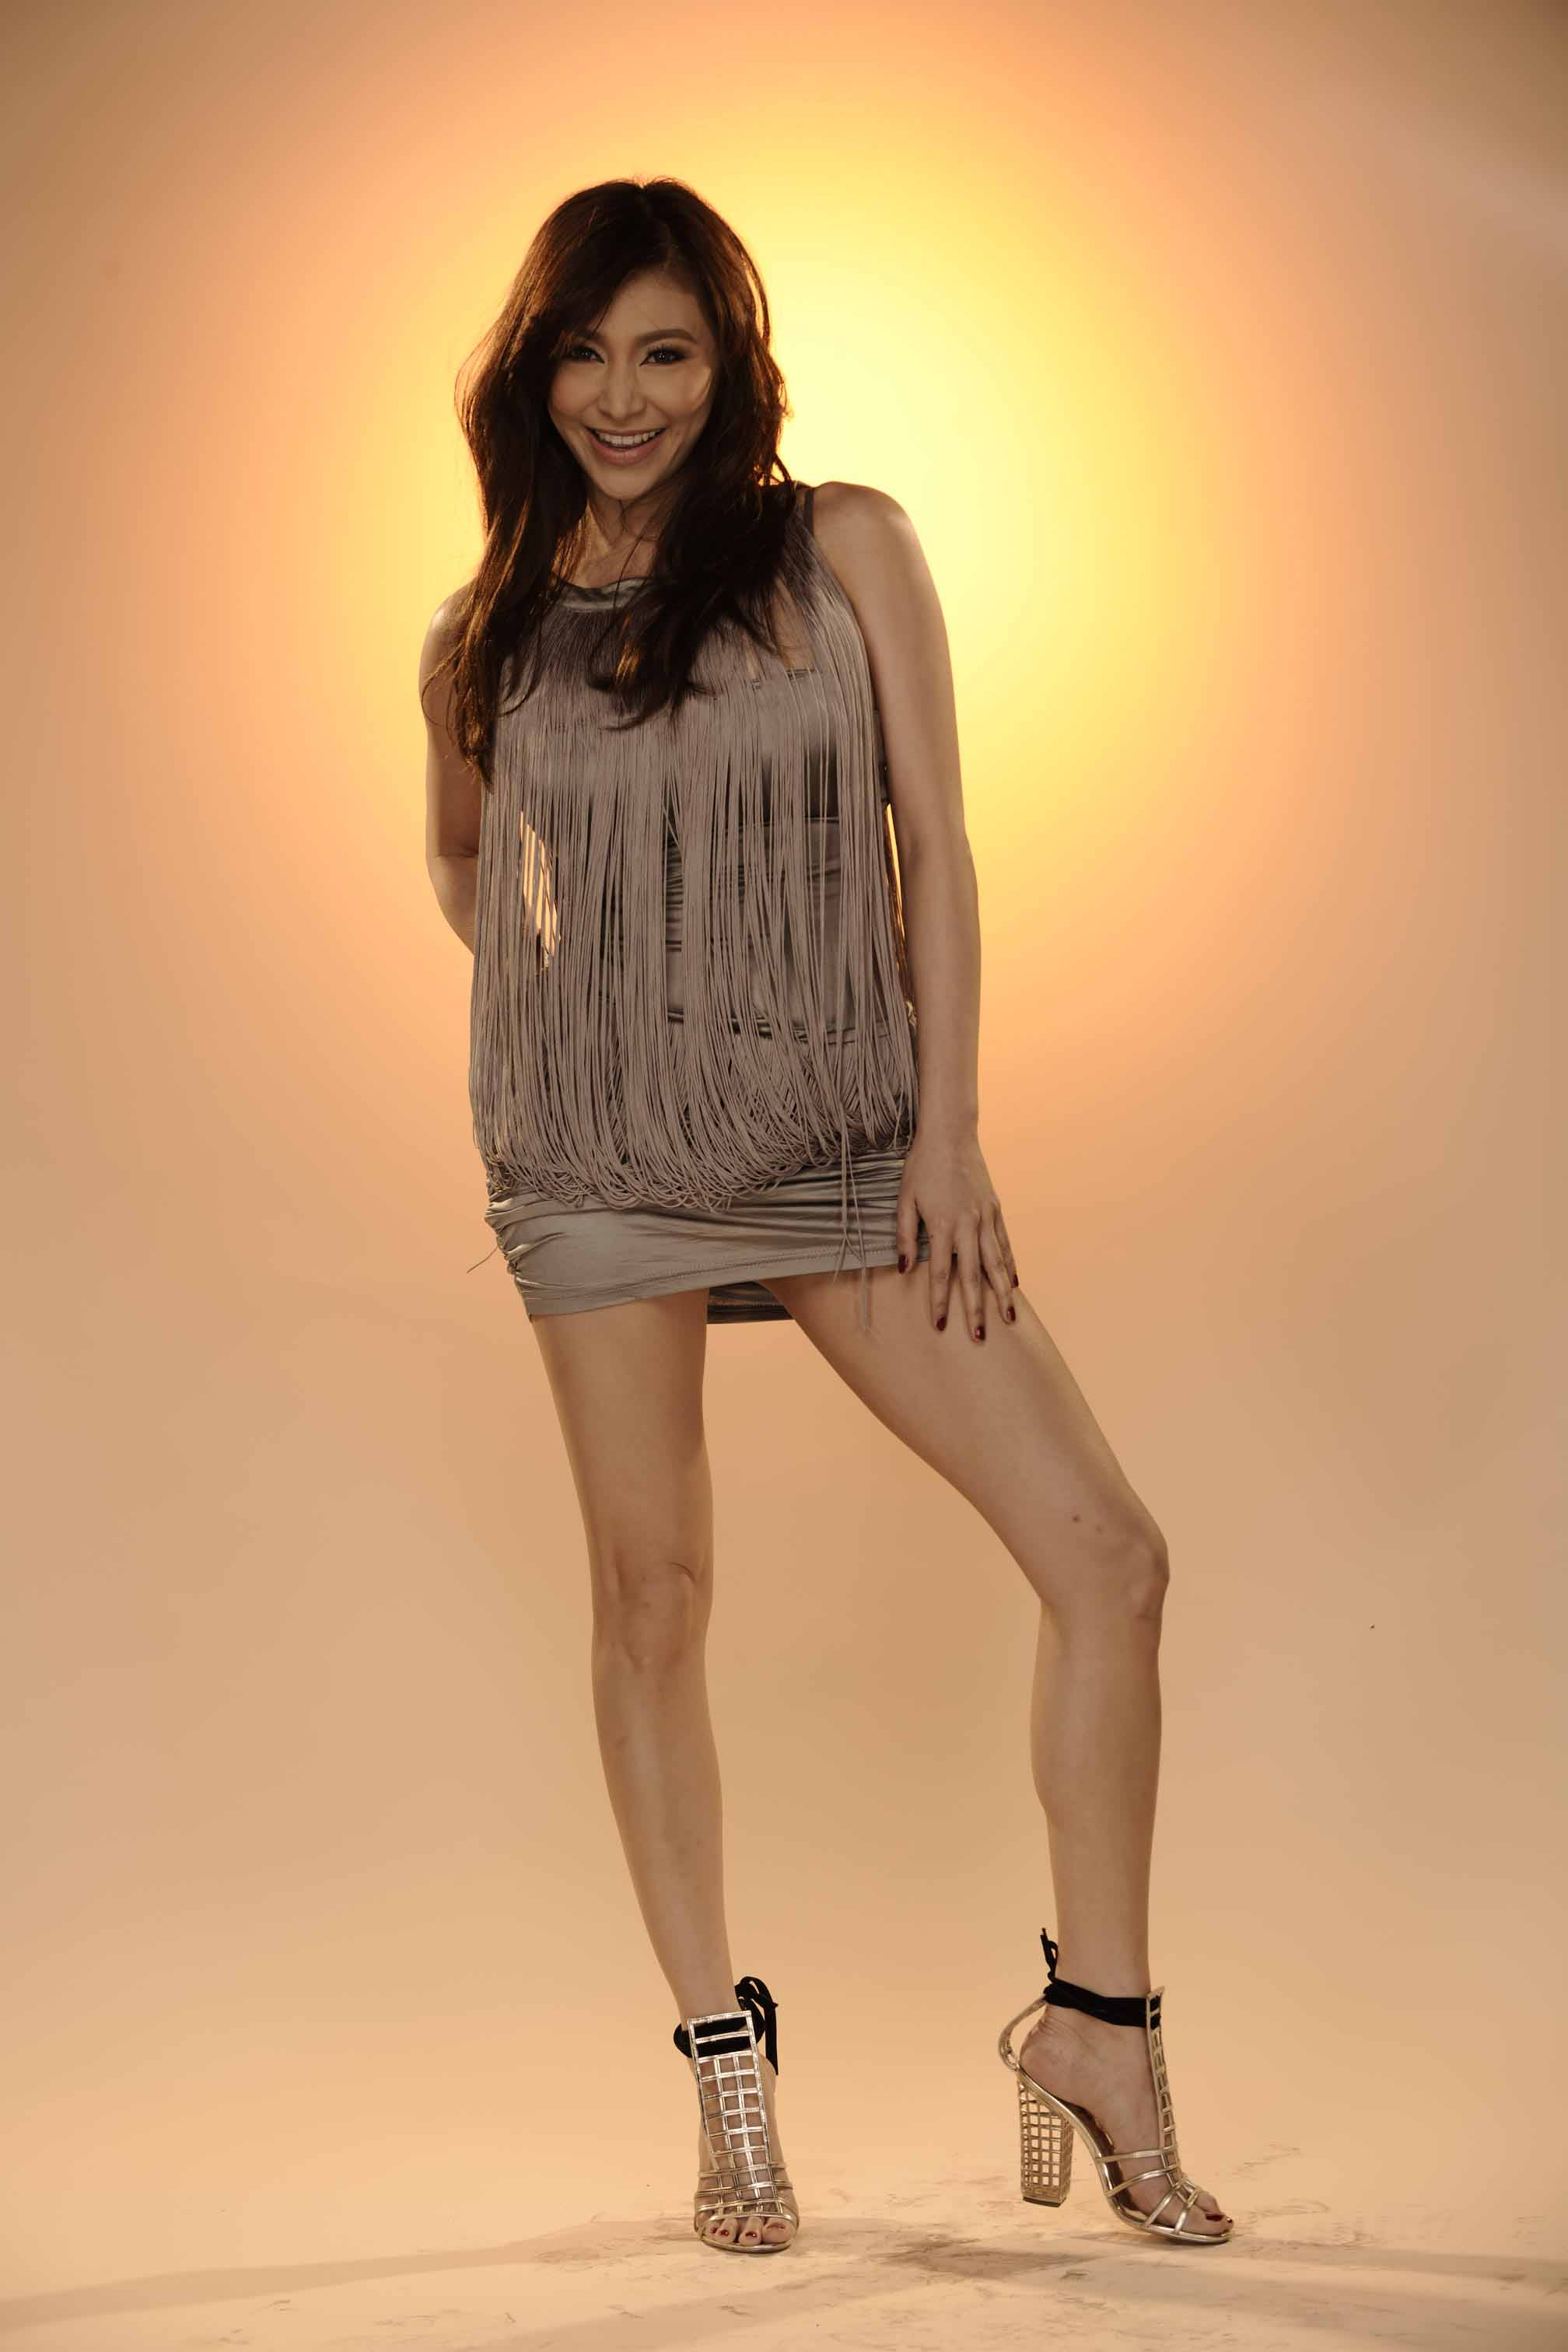 Rufa Mae Quinto (b. 1978) naked (62 foto and video), Sexy, Paparazzi, Twitter, braless 2006